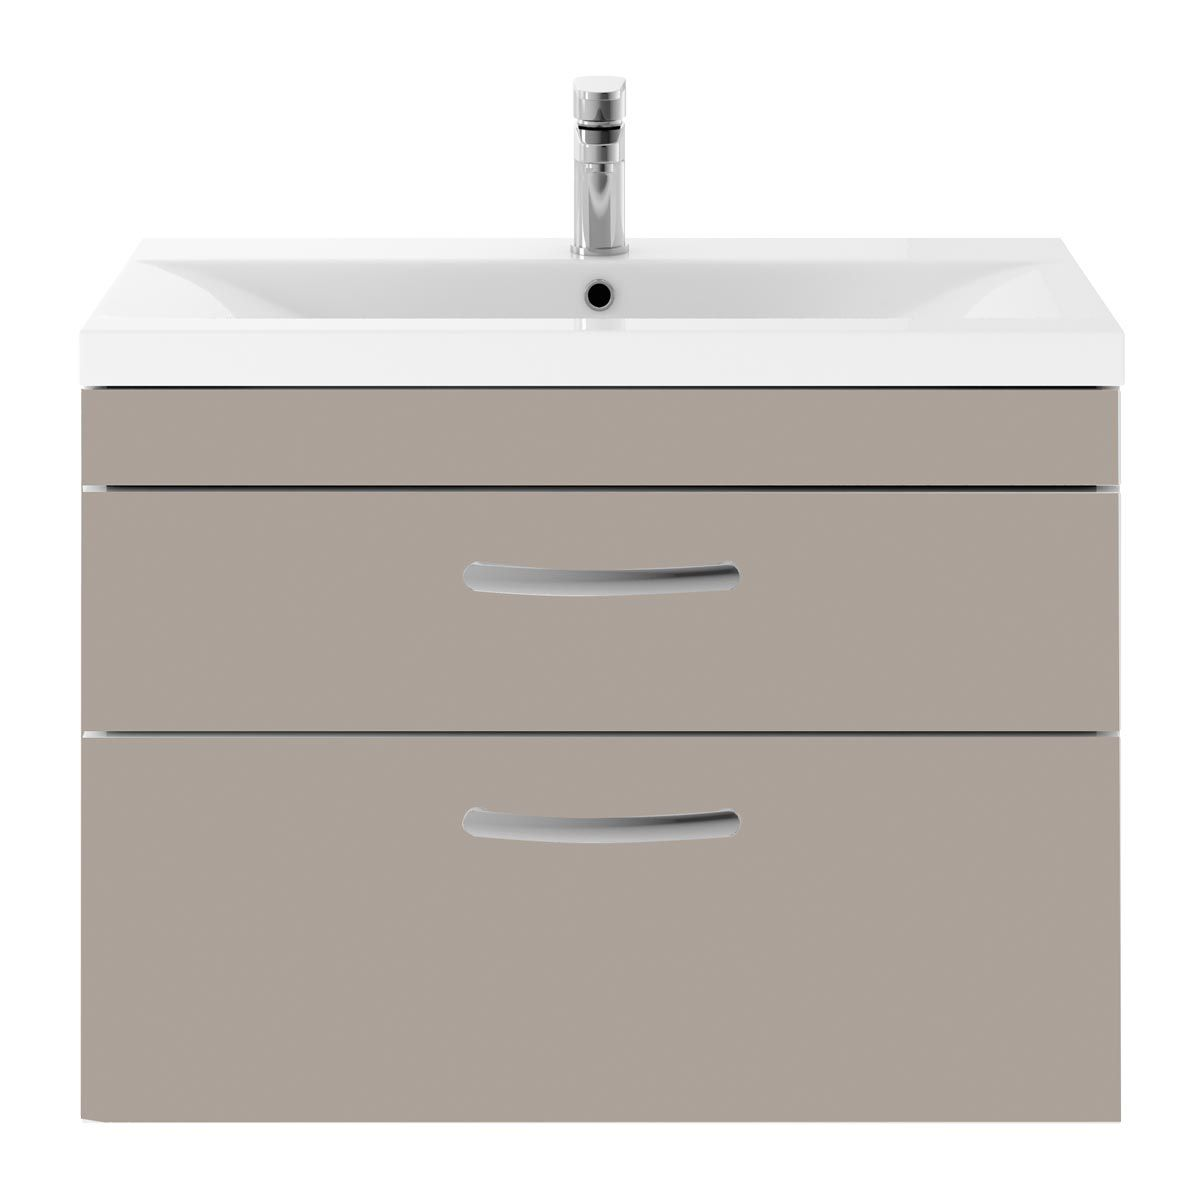 Nuie Athena Stone Grey 2 Drawer Wall Hung Vanity Unit with 40mm Profile Basin 800mm